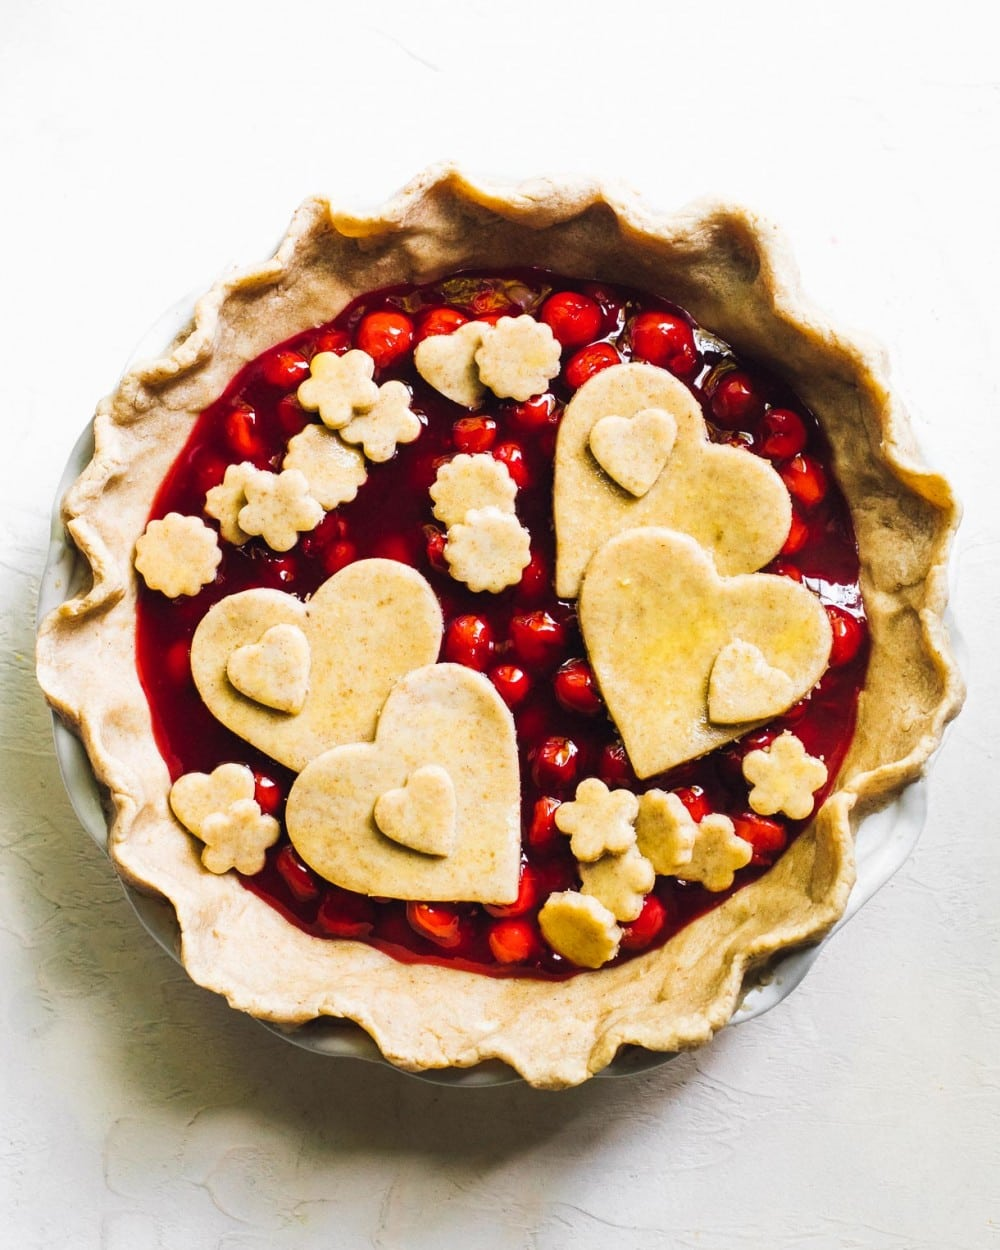 unbaked gluten free cherry pie with hearts on top for the pie crust